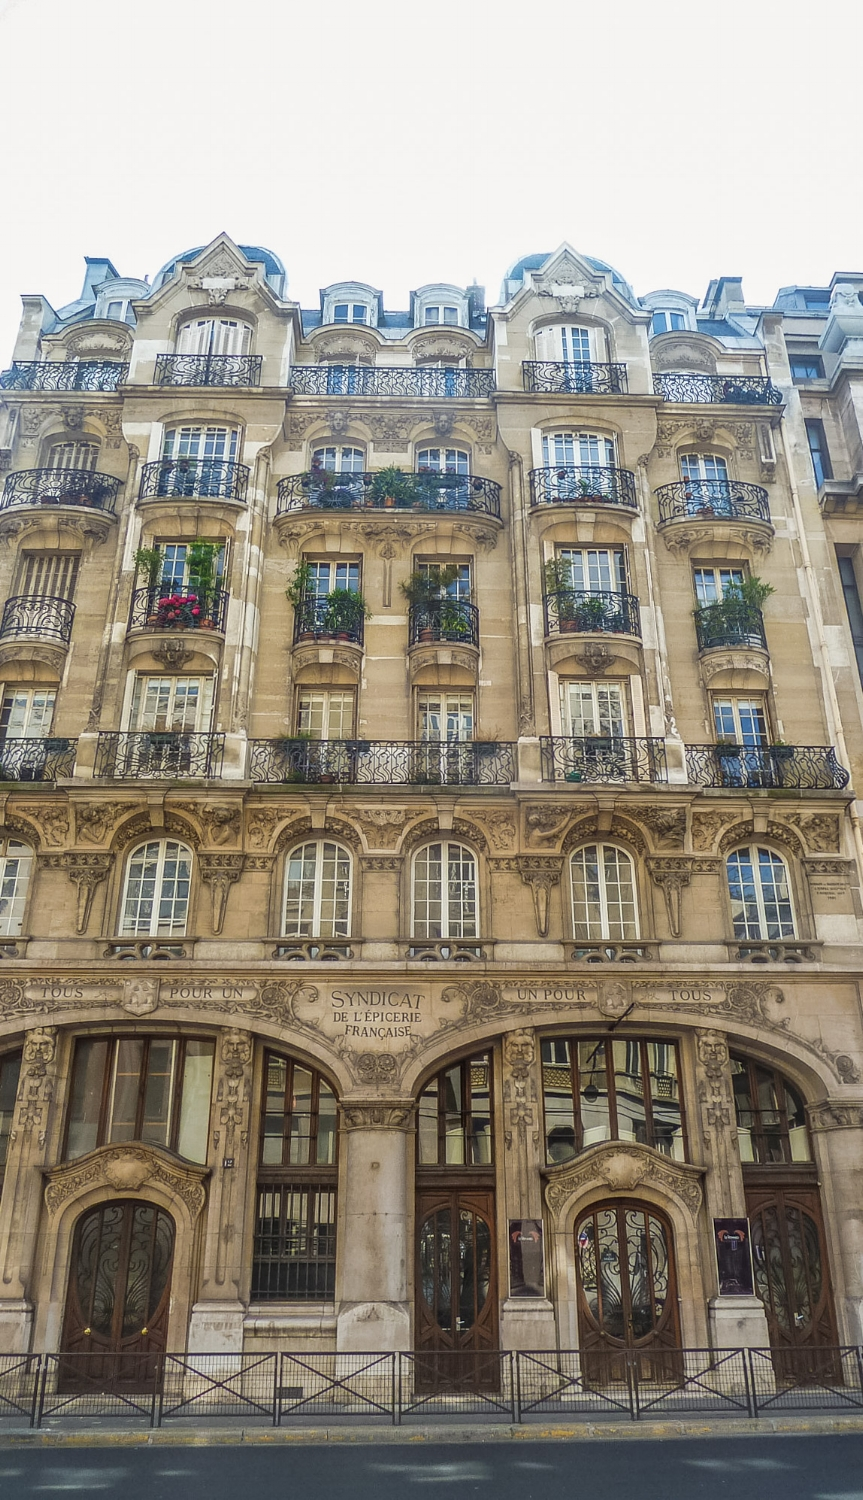 curio.trips.france.paris.architecture.jpg